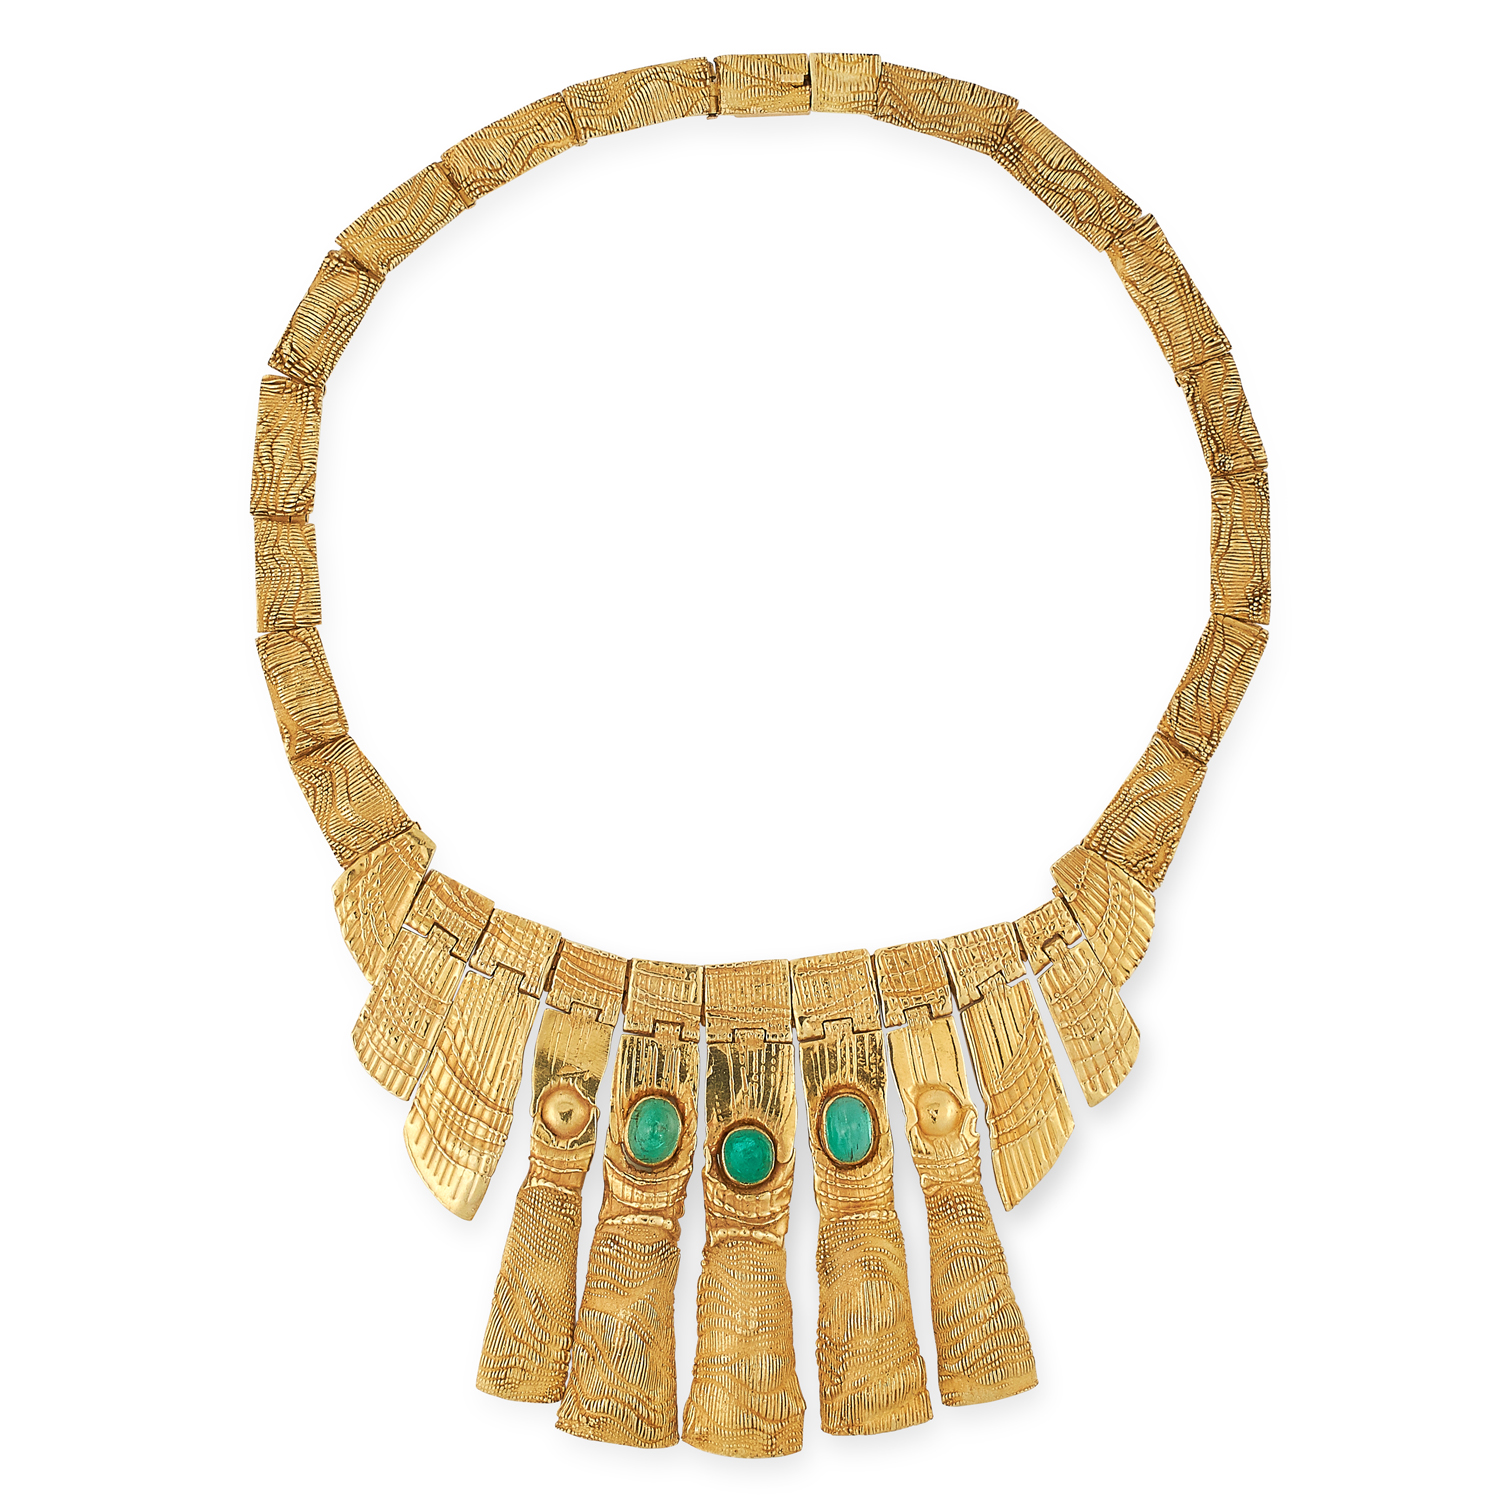 AN EMERALD NECKLACE, CHARLES DE TEMPLE 1973 formed of a fringe of graduated textured gold links, the